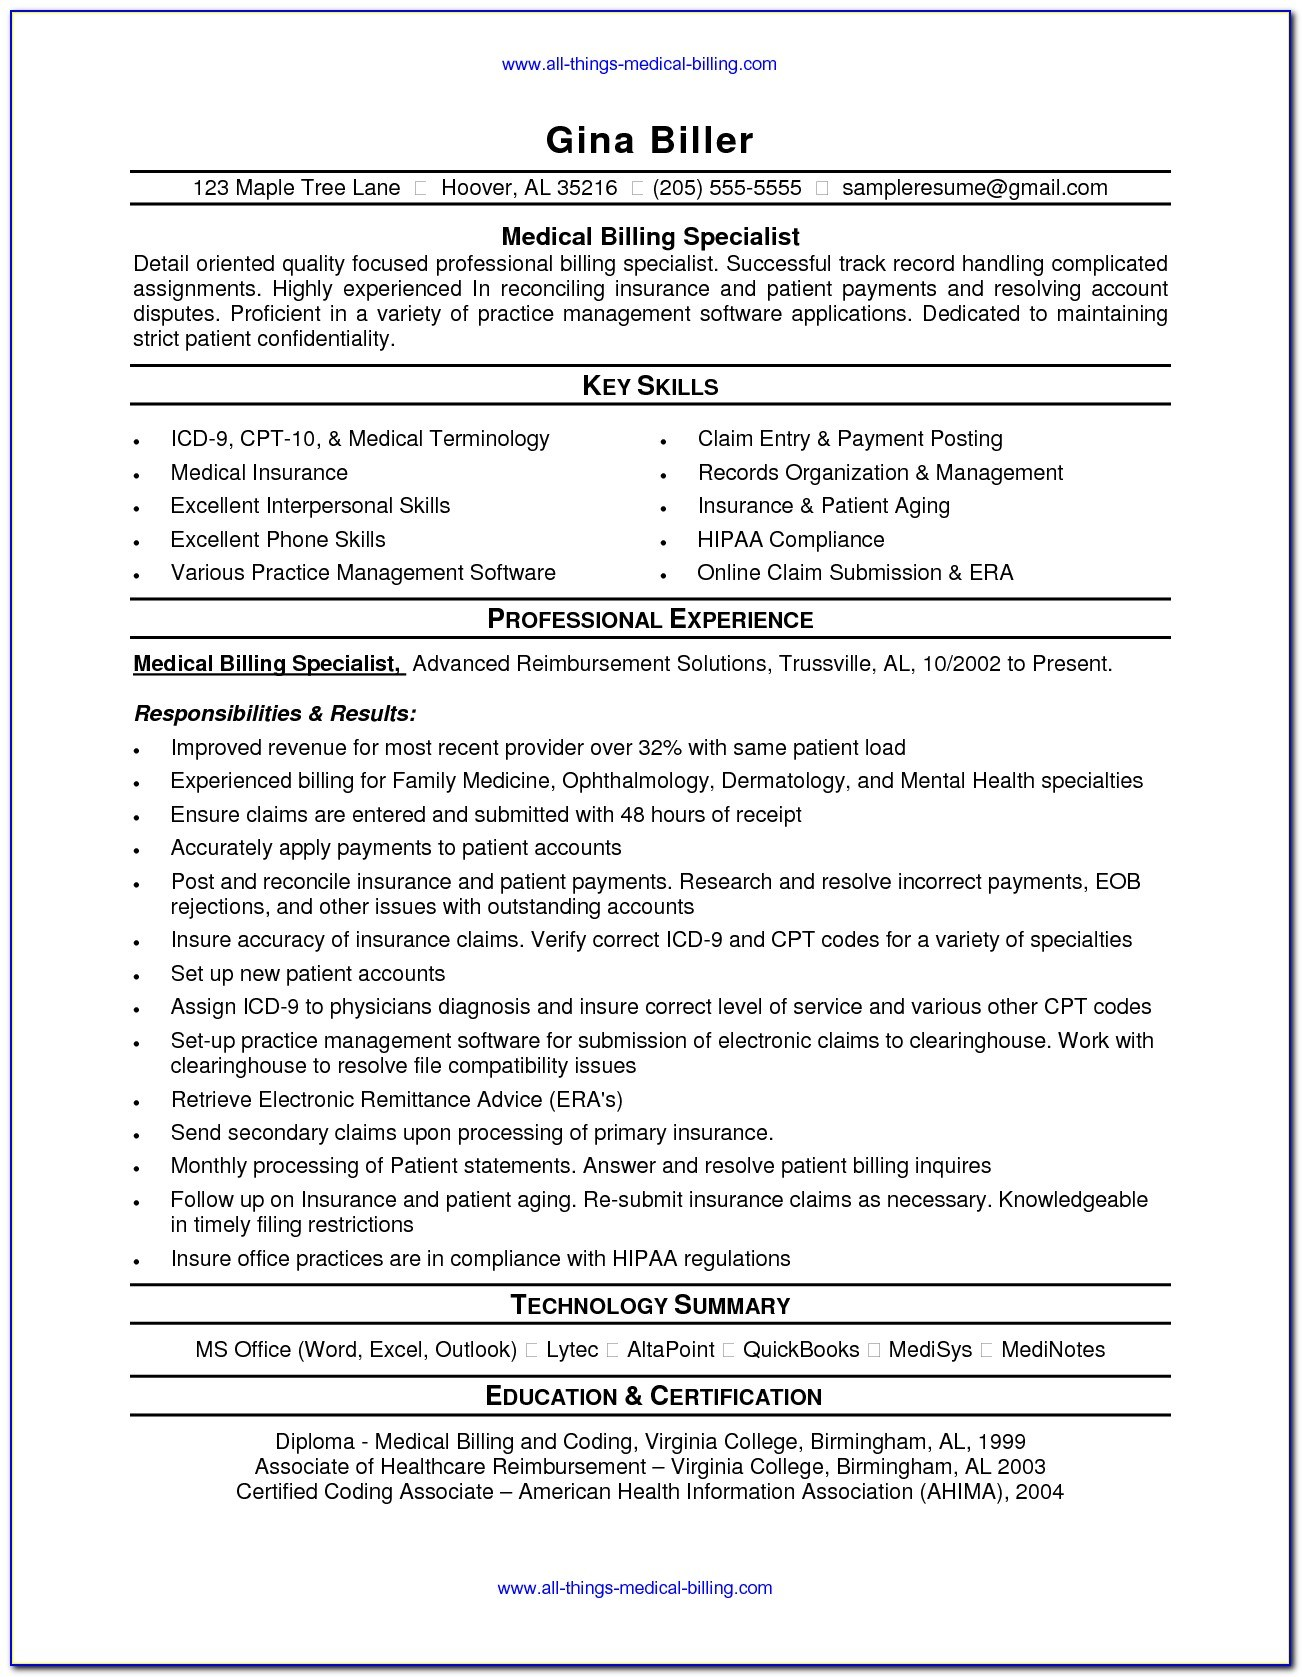 health insurance resume template vincegray2014 medical personal trainer sample for Resume Medical Insurance Resume